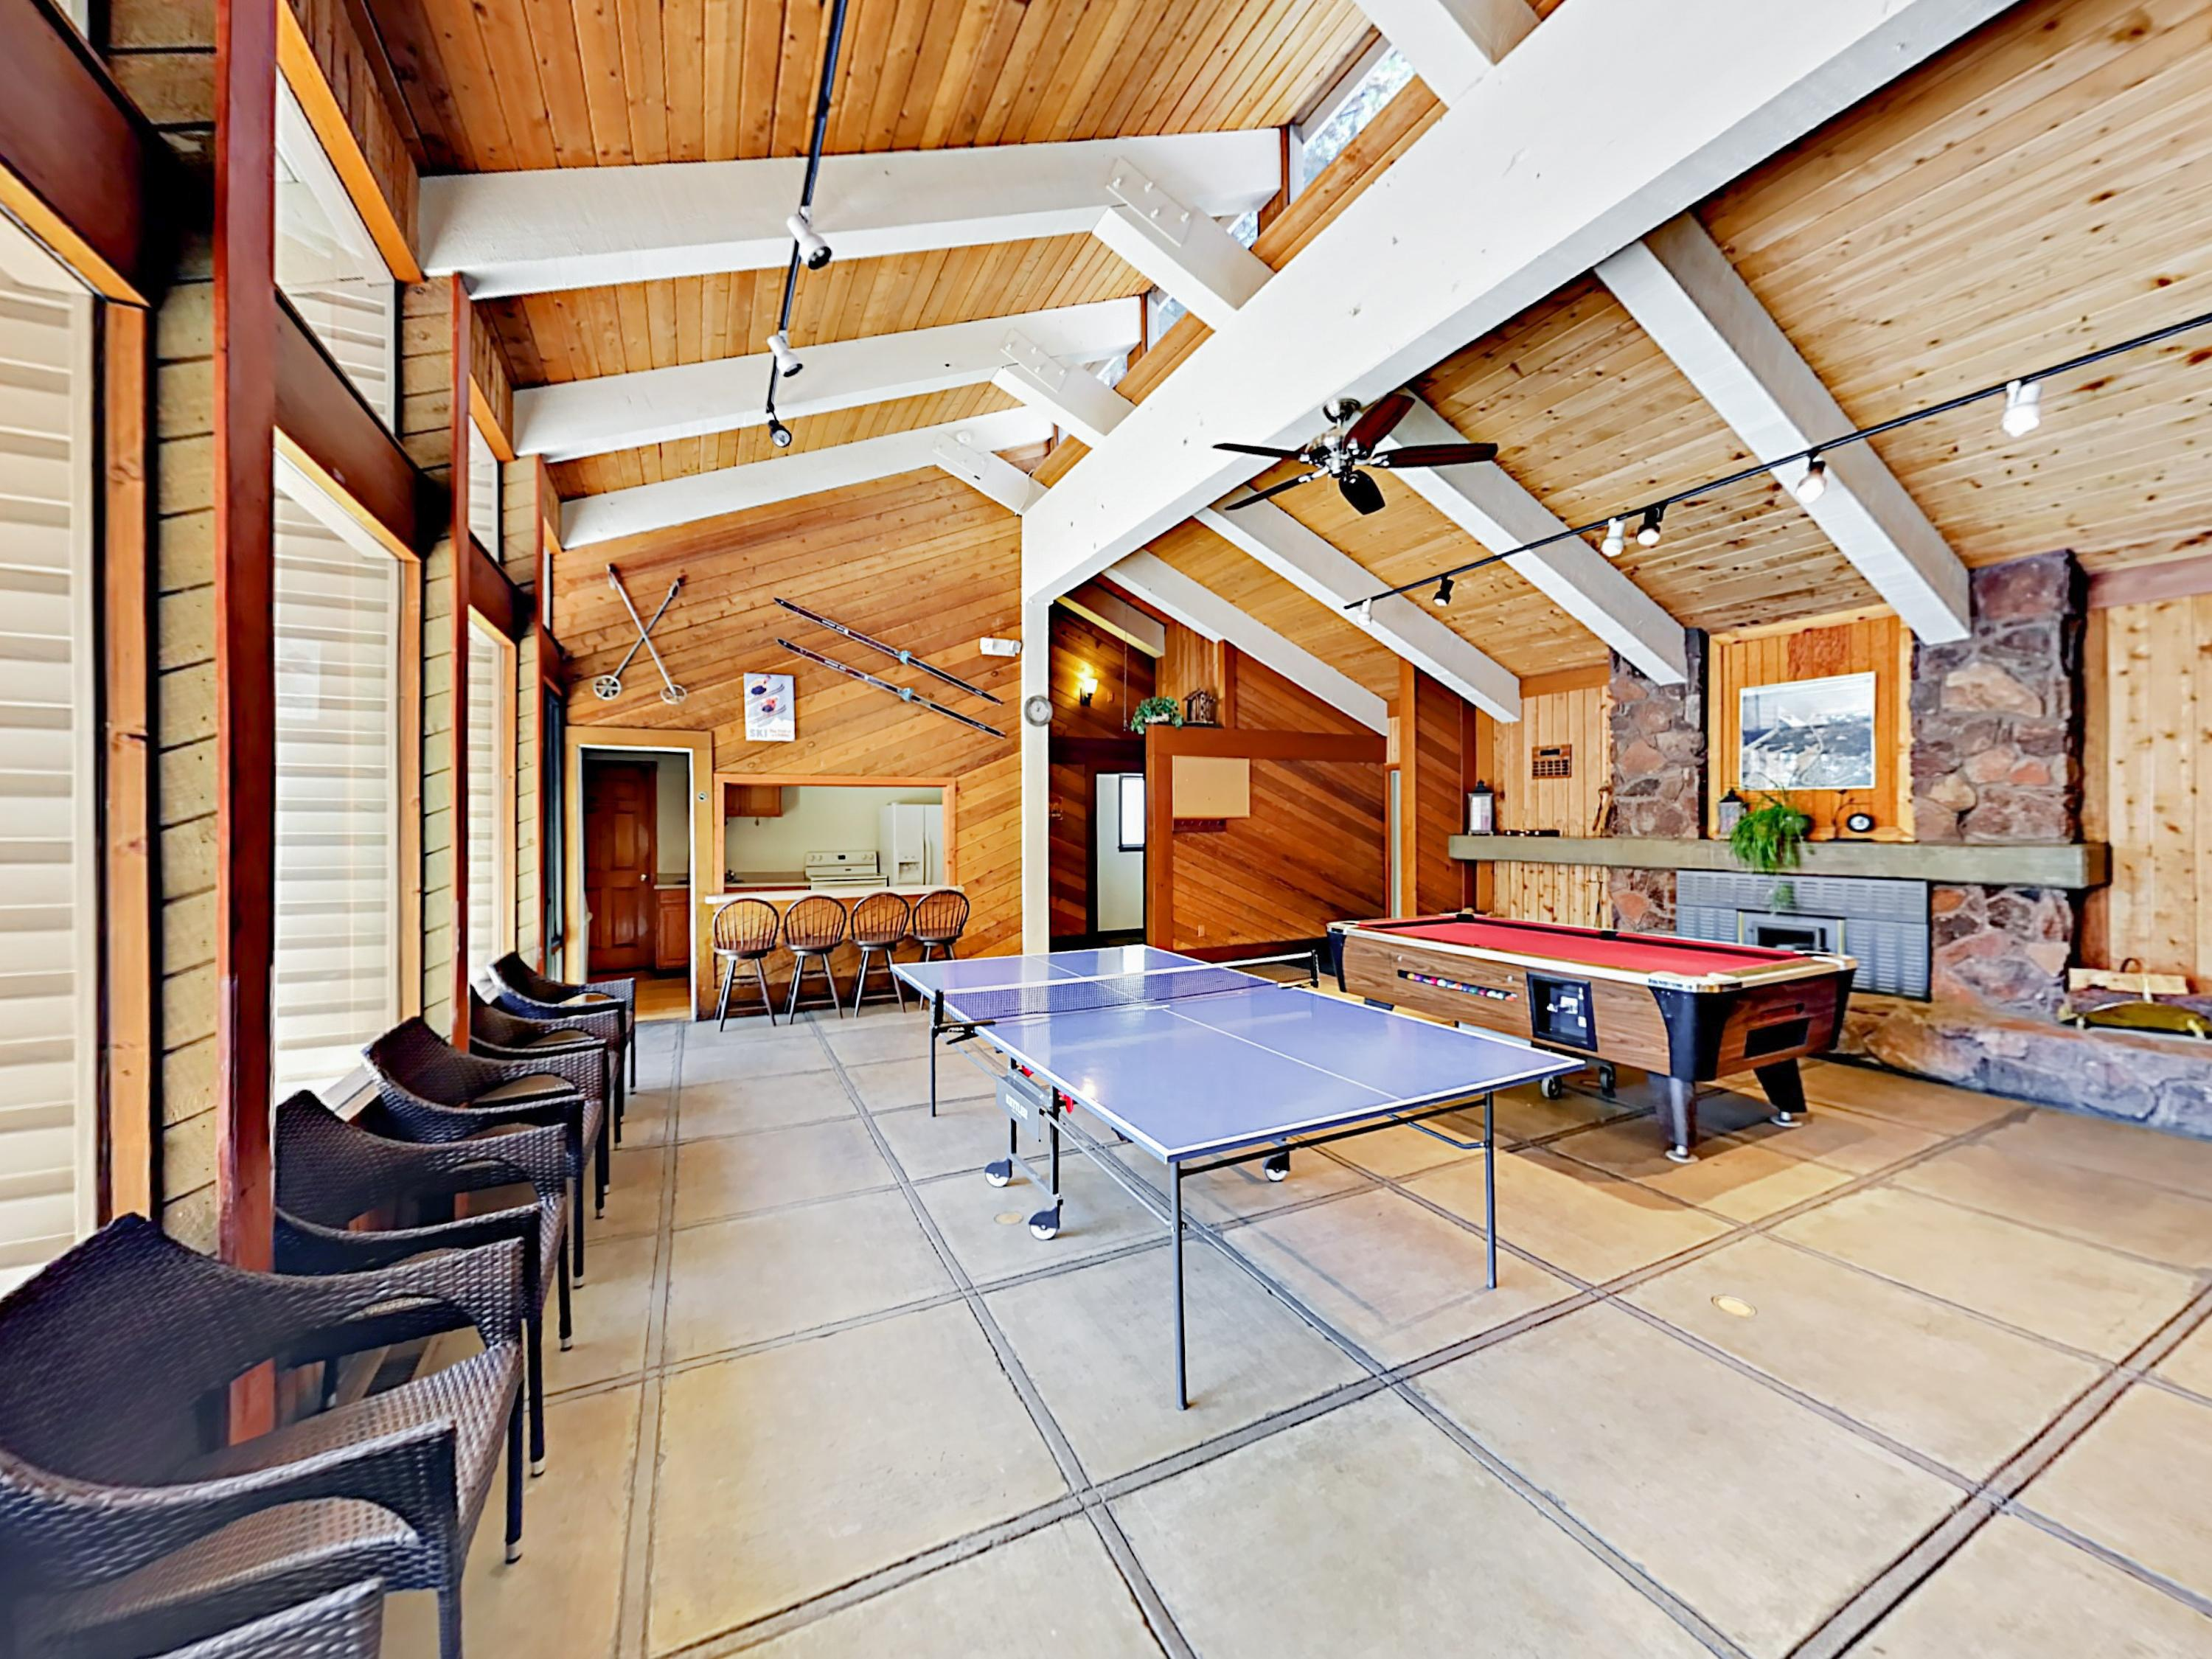 Play a friendly game of pool or ping-pong in the clubhouse.